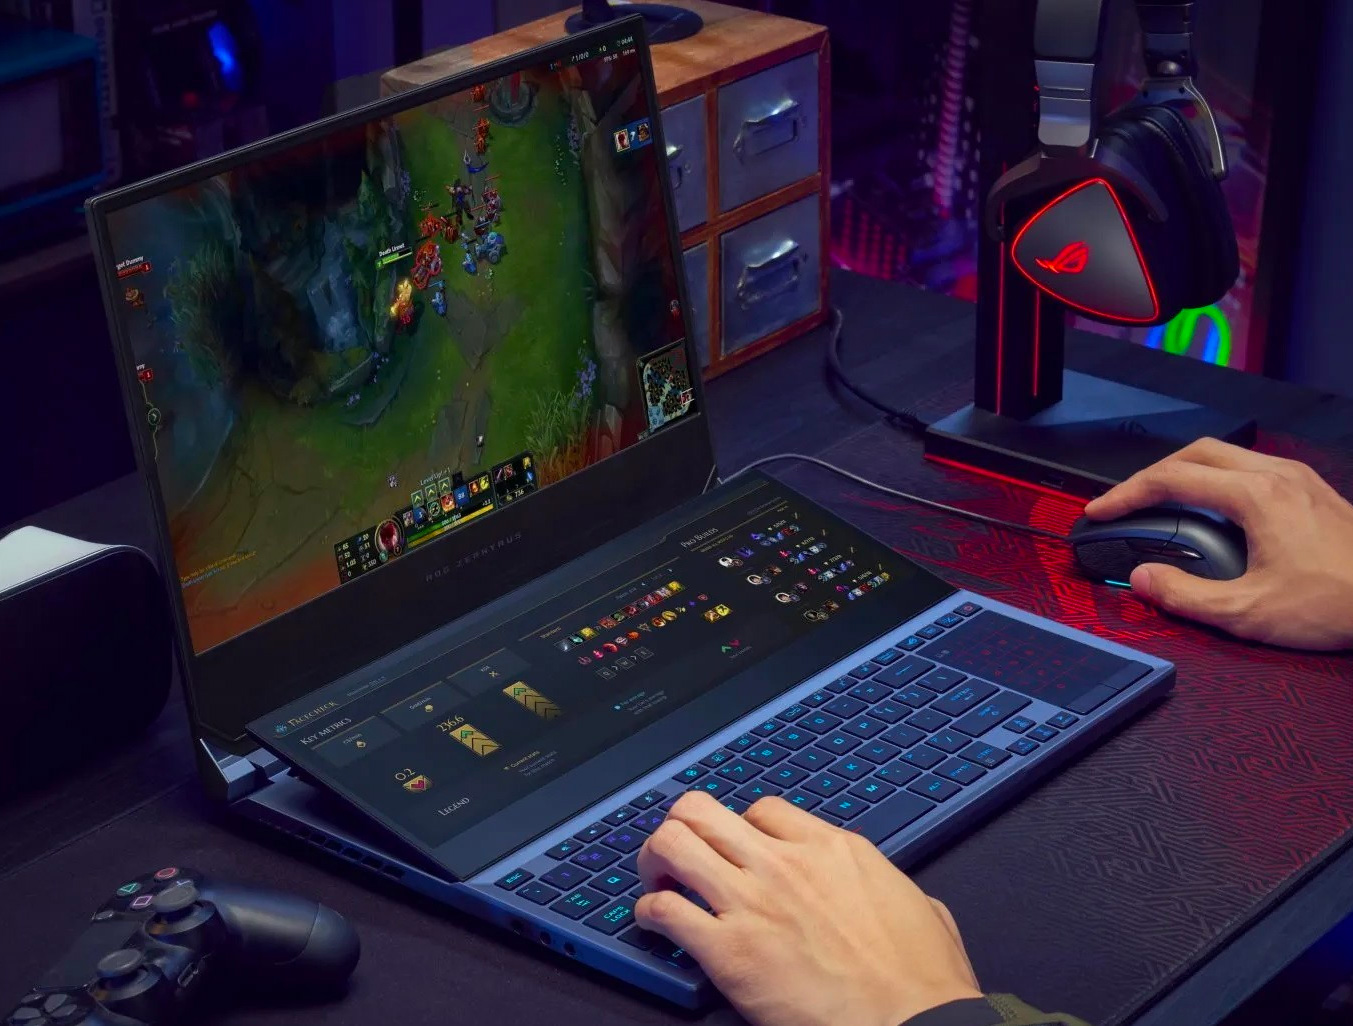 Asus Introduces Dual-4k Touchscreen Gaming Laptop at werd.com